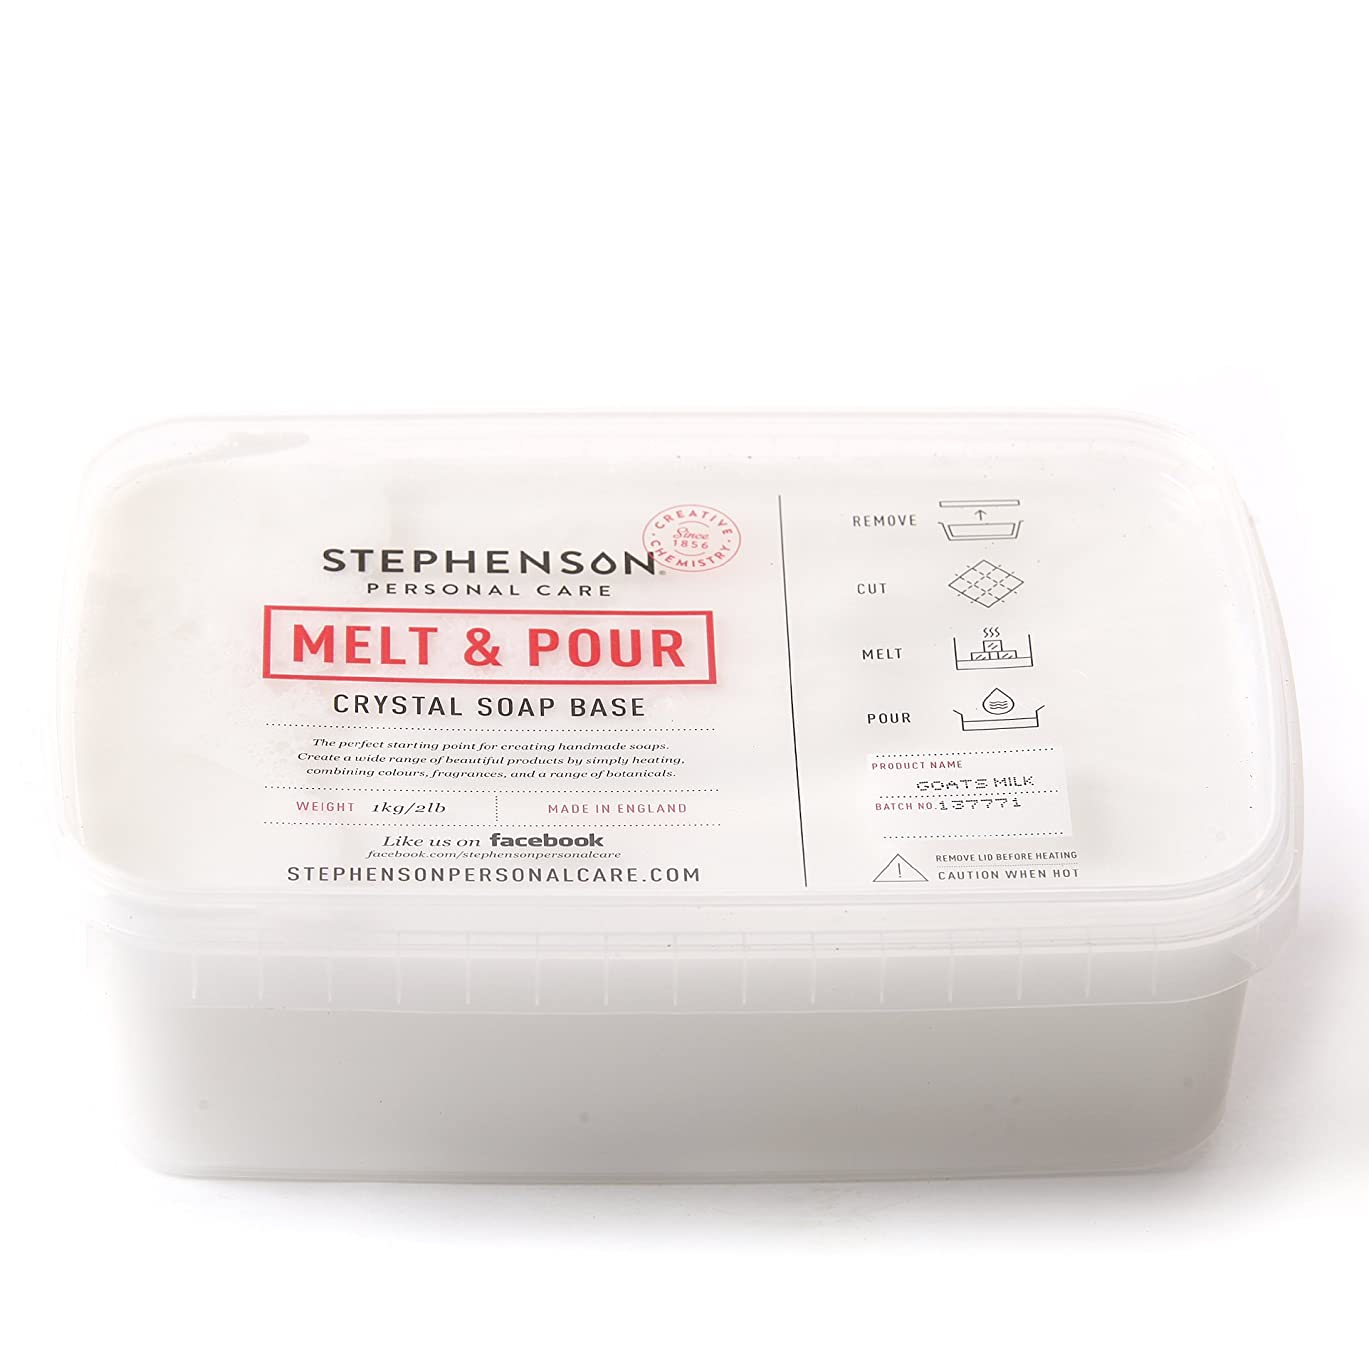 前提条件提出する厳密にMelt and Pour Soap Base Goat's Milk - 1Kg